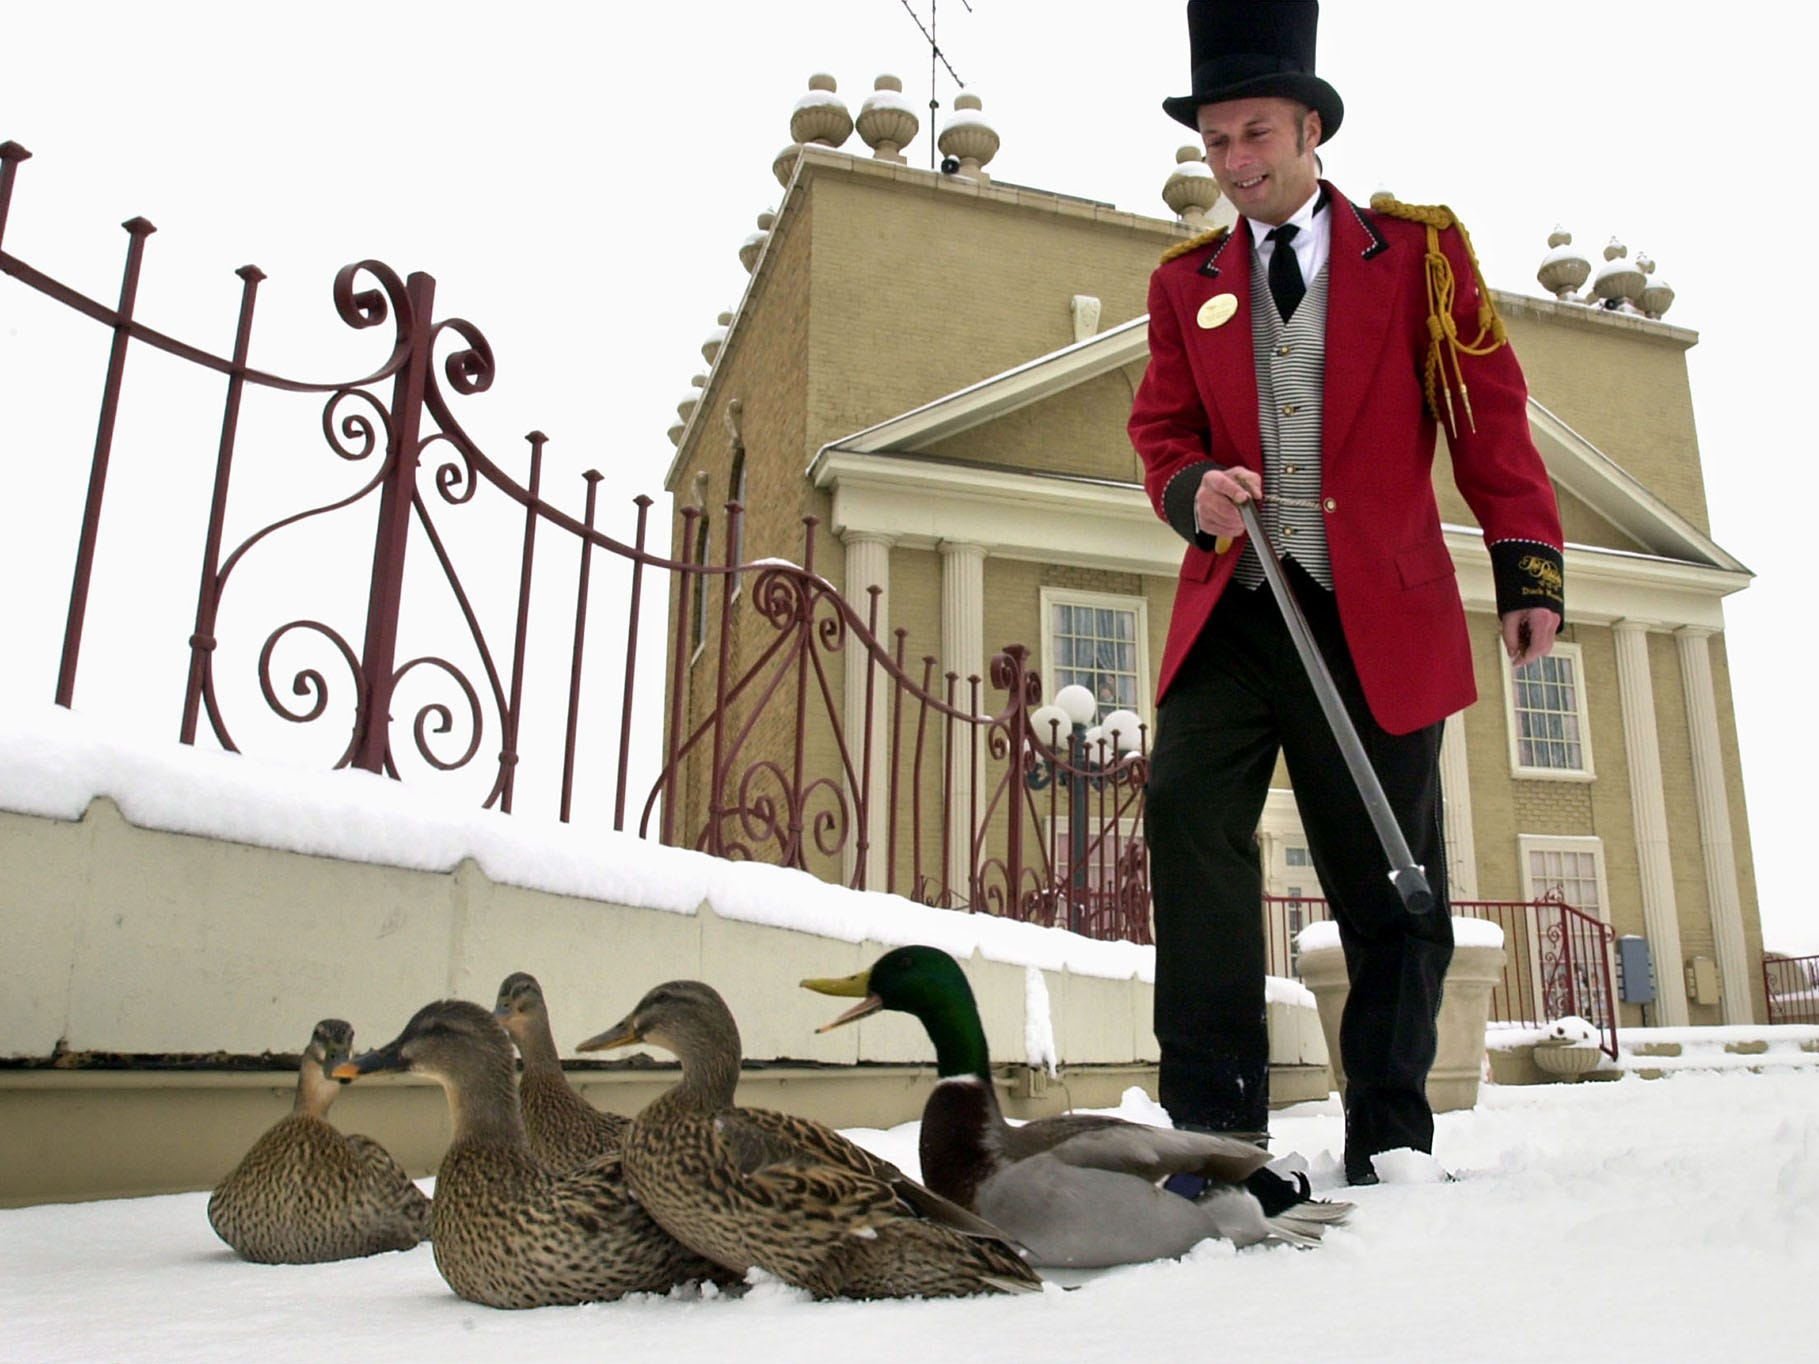 """""""They got a little tired at the end,"""" said Peabody Hotel Duckmaster Kalyn Housdan about his fledgling duck team's traverse across a snow-capped rooftop on their way to their morning duck march duties in the lobby of the Peabody Hotel on Feb. 6 2002. The team of ducks has been on the job two weeks after the last duck team traveled by limousine to the new Peabody Hotel in Little Rock, Ark."""